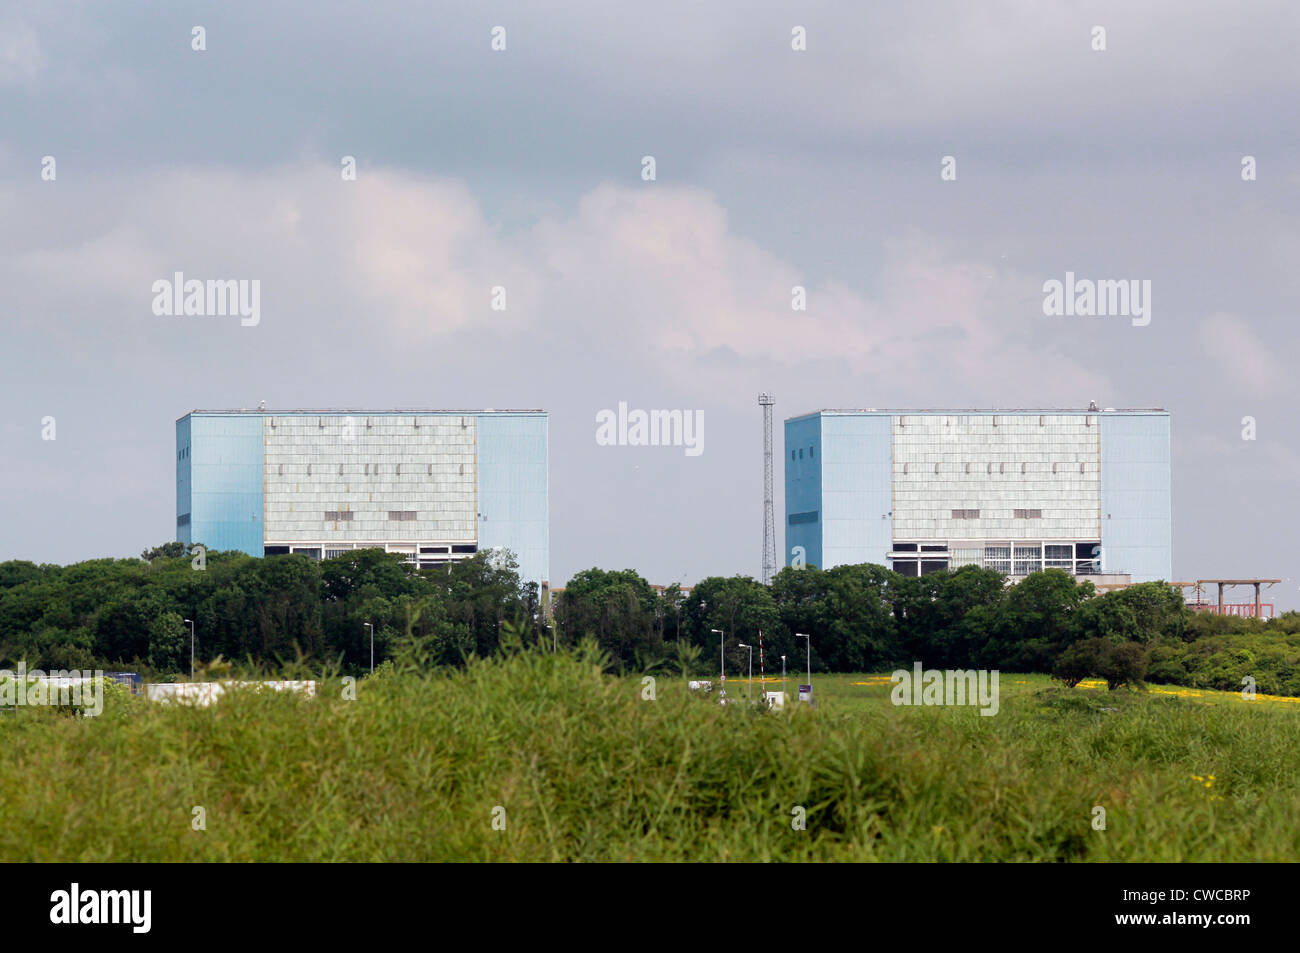 Hinkley  A reactor buildings at Hinkley Point nuclear power station, Somerset, England - Stock Image